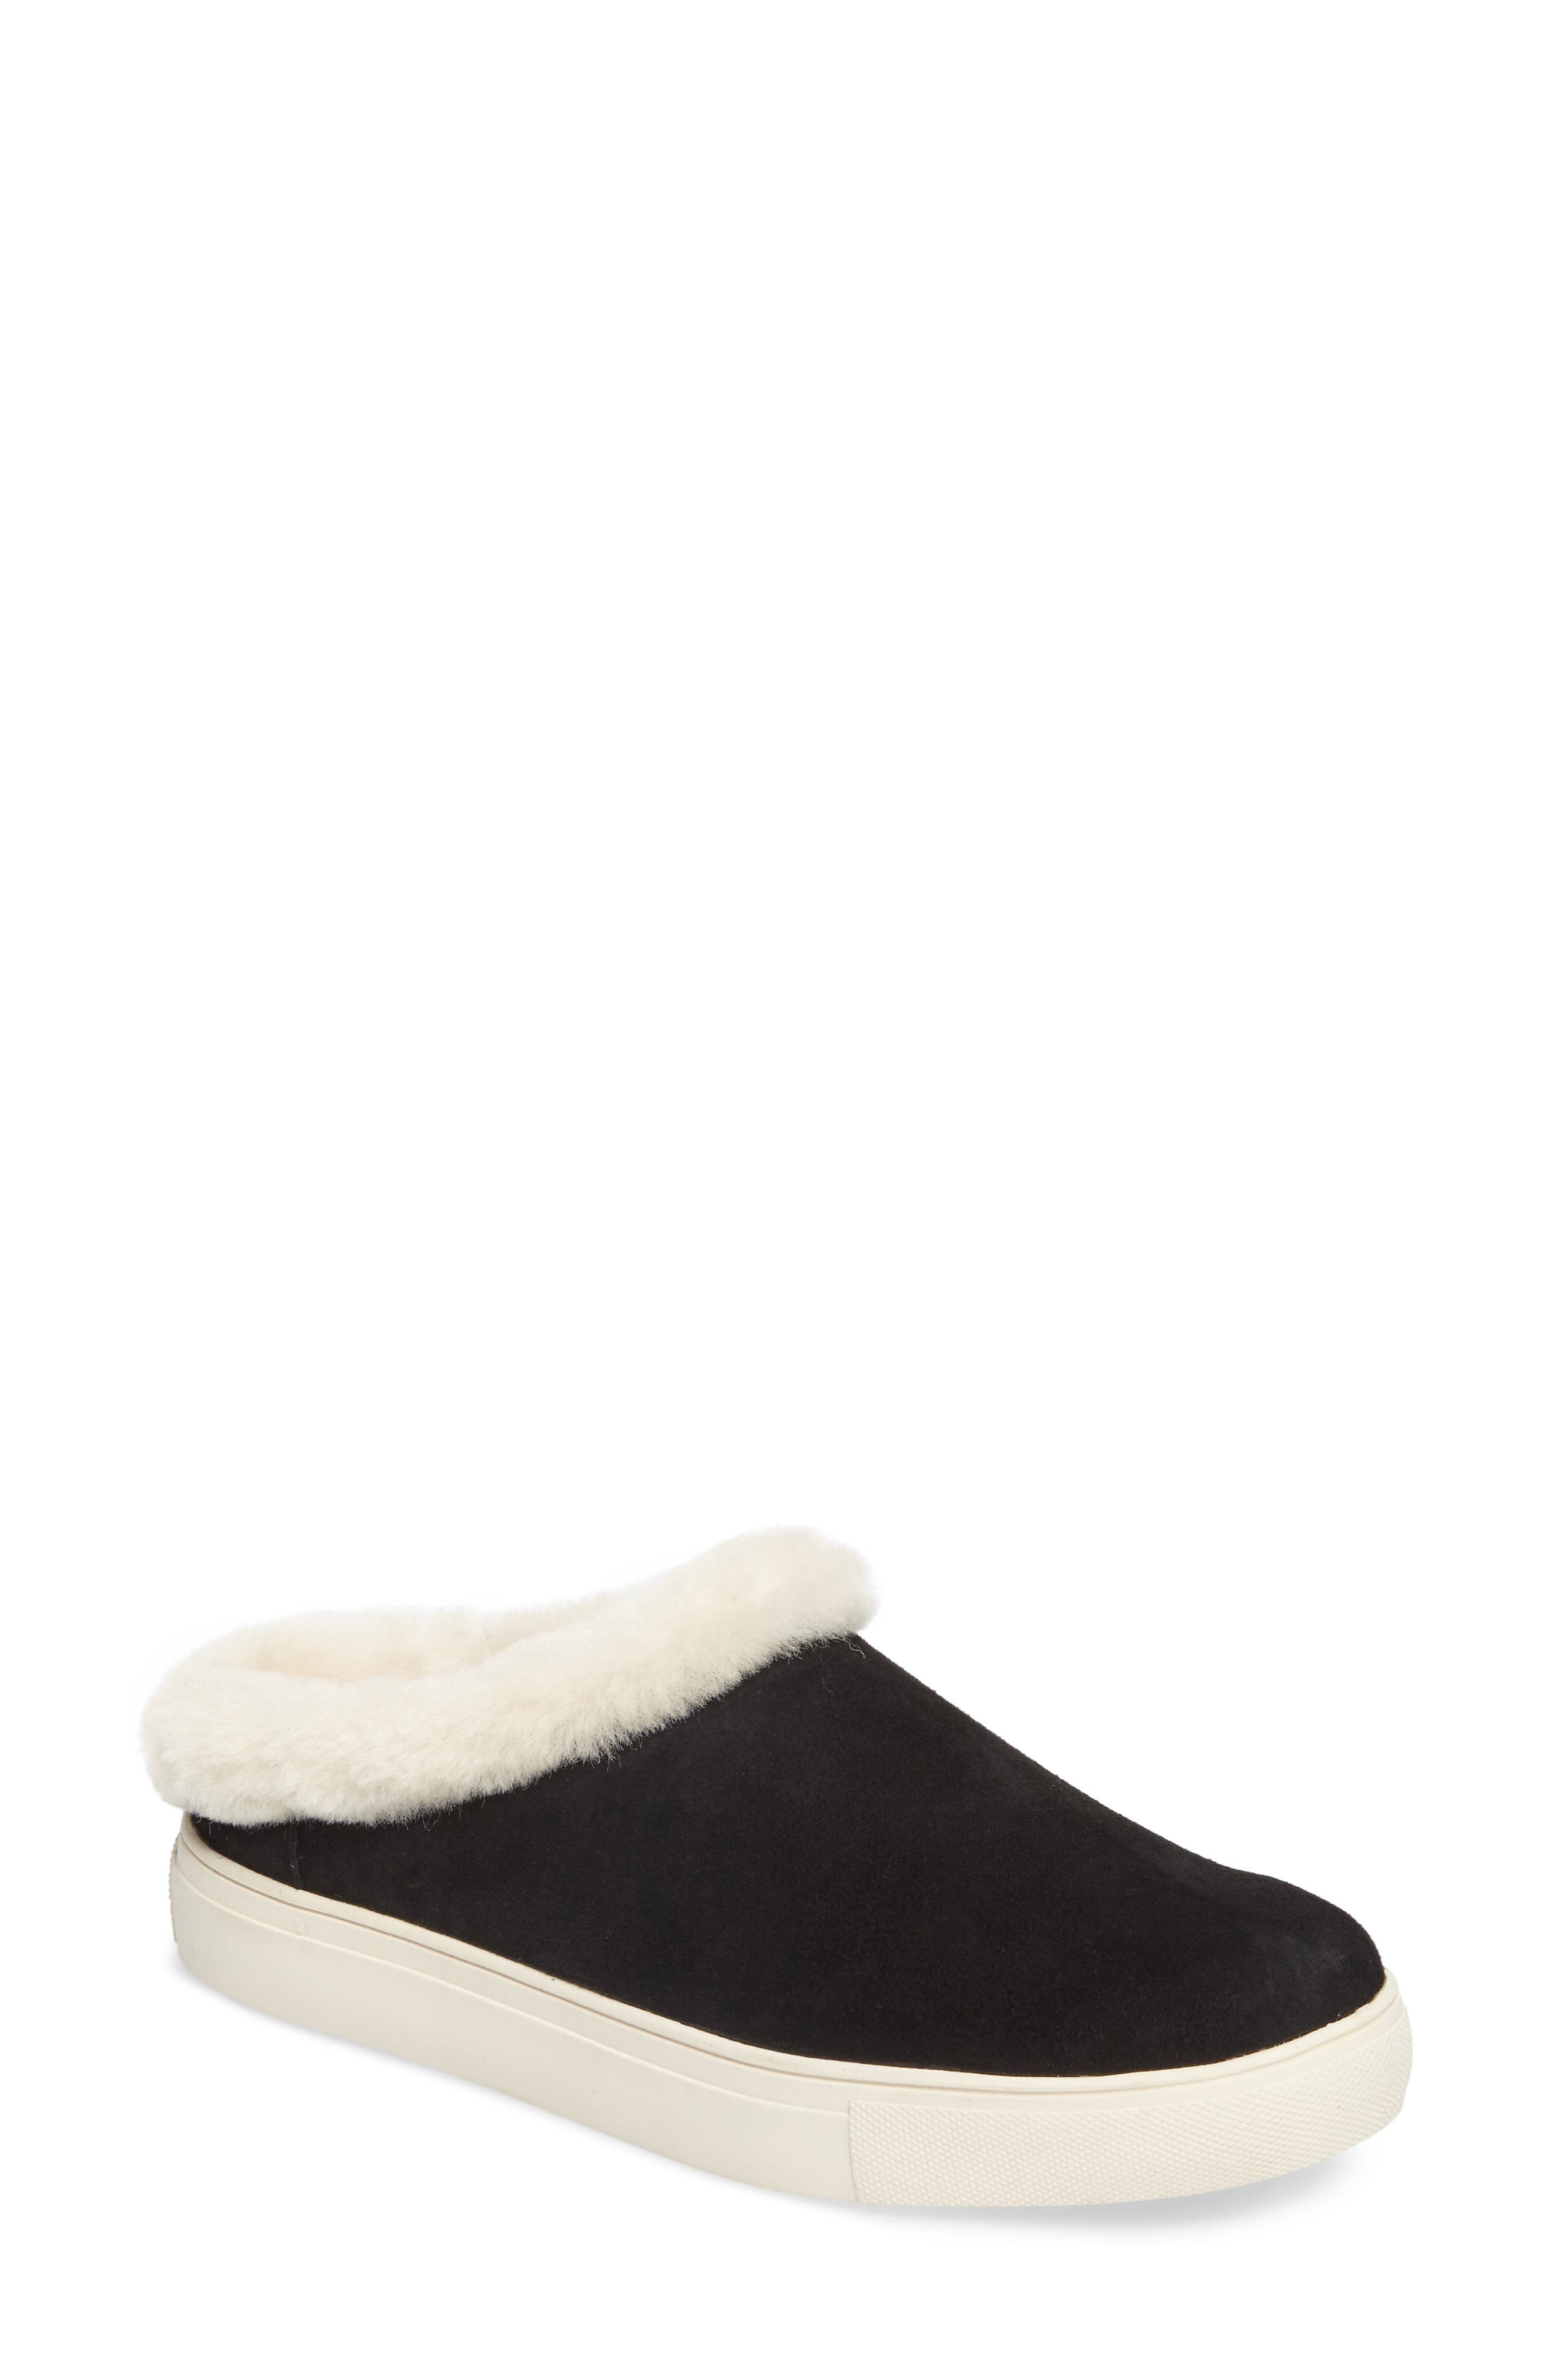 Leia Genuine Shearling Lined Slip-On,                             Main thumbnail 1, color,                             001